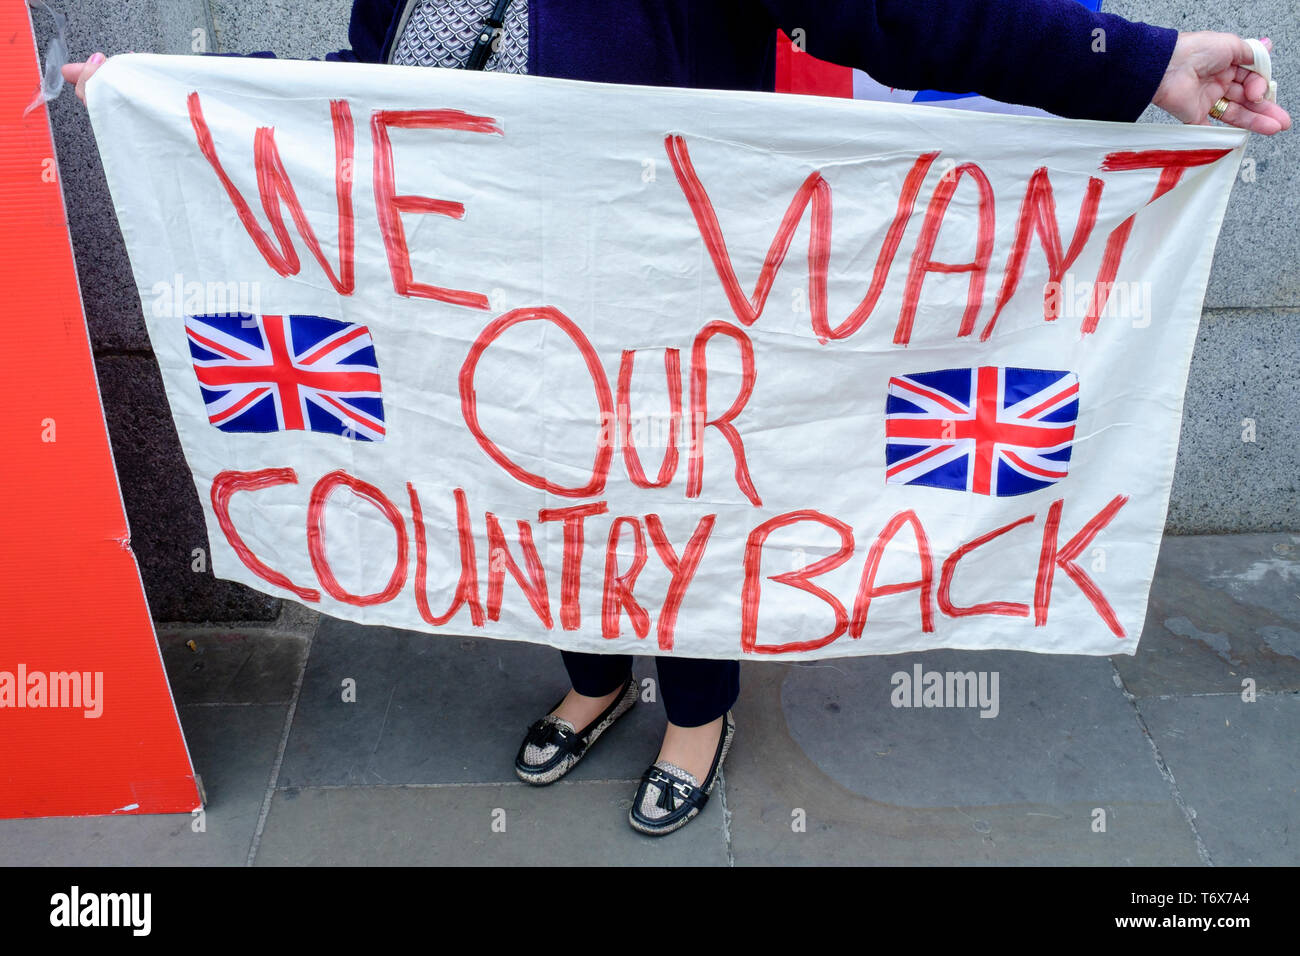 Pro-Brexit banners outside Houses of Parliament, Westminster, London. - Stock Image